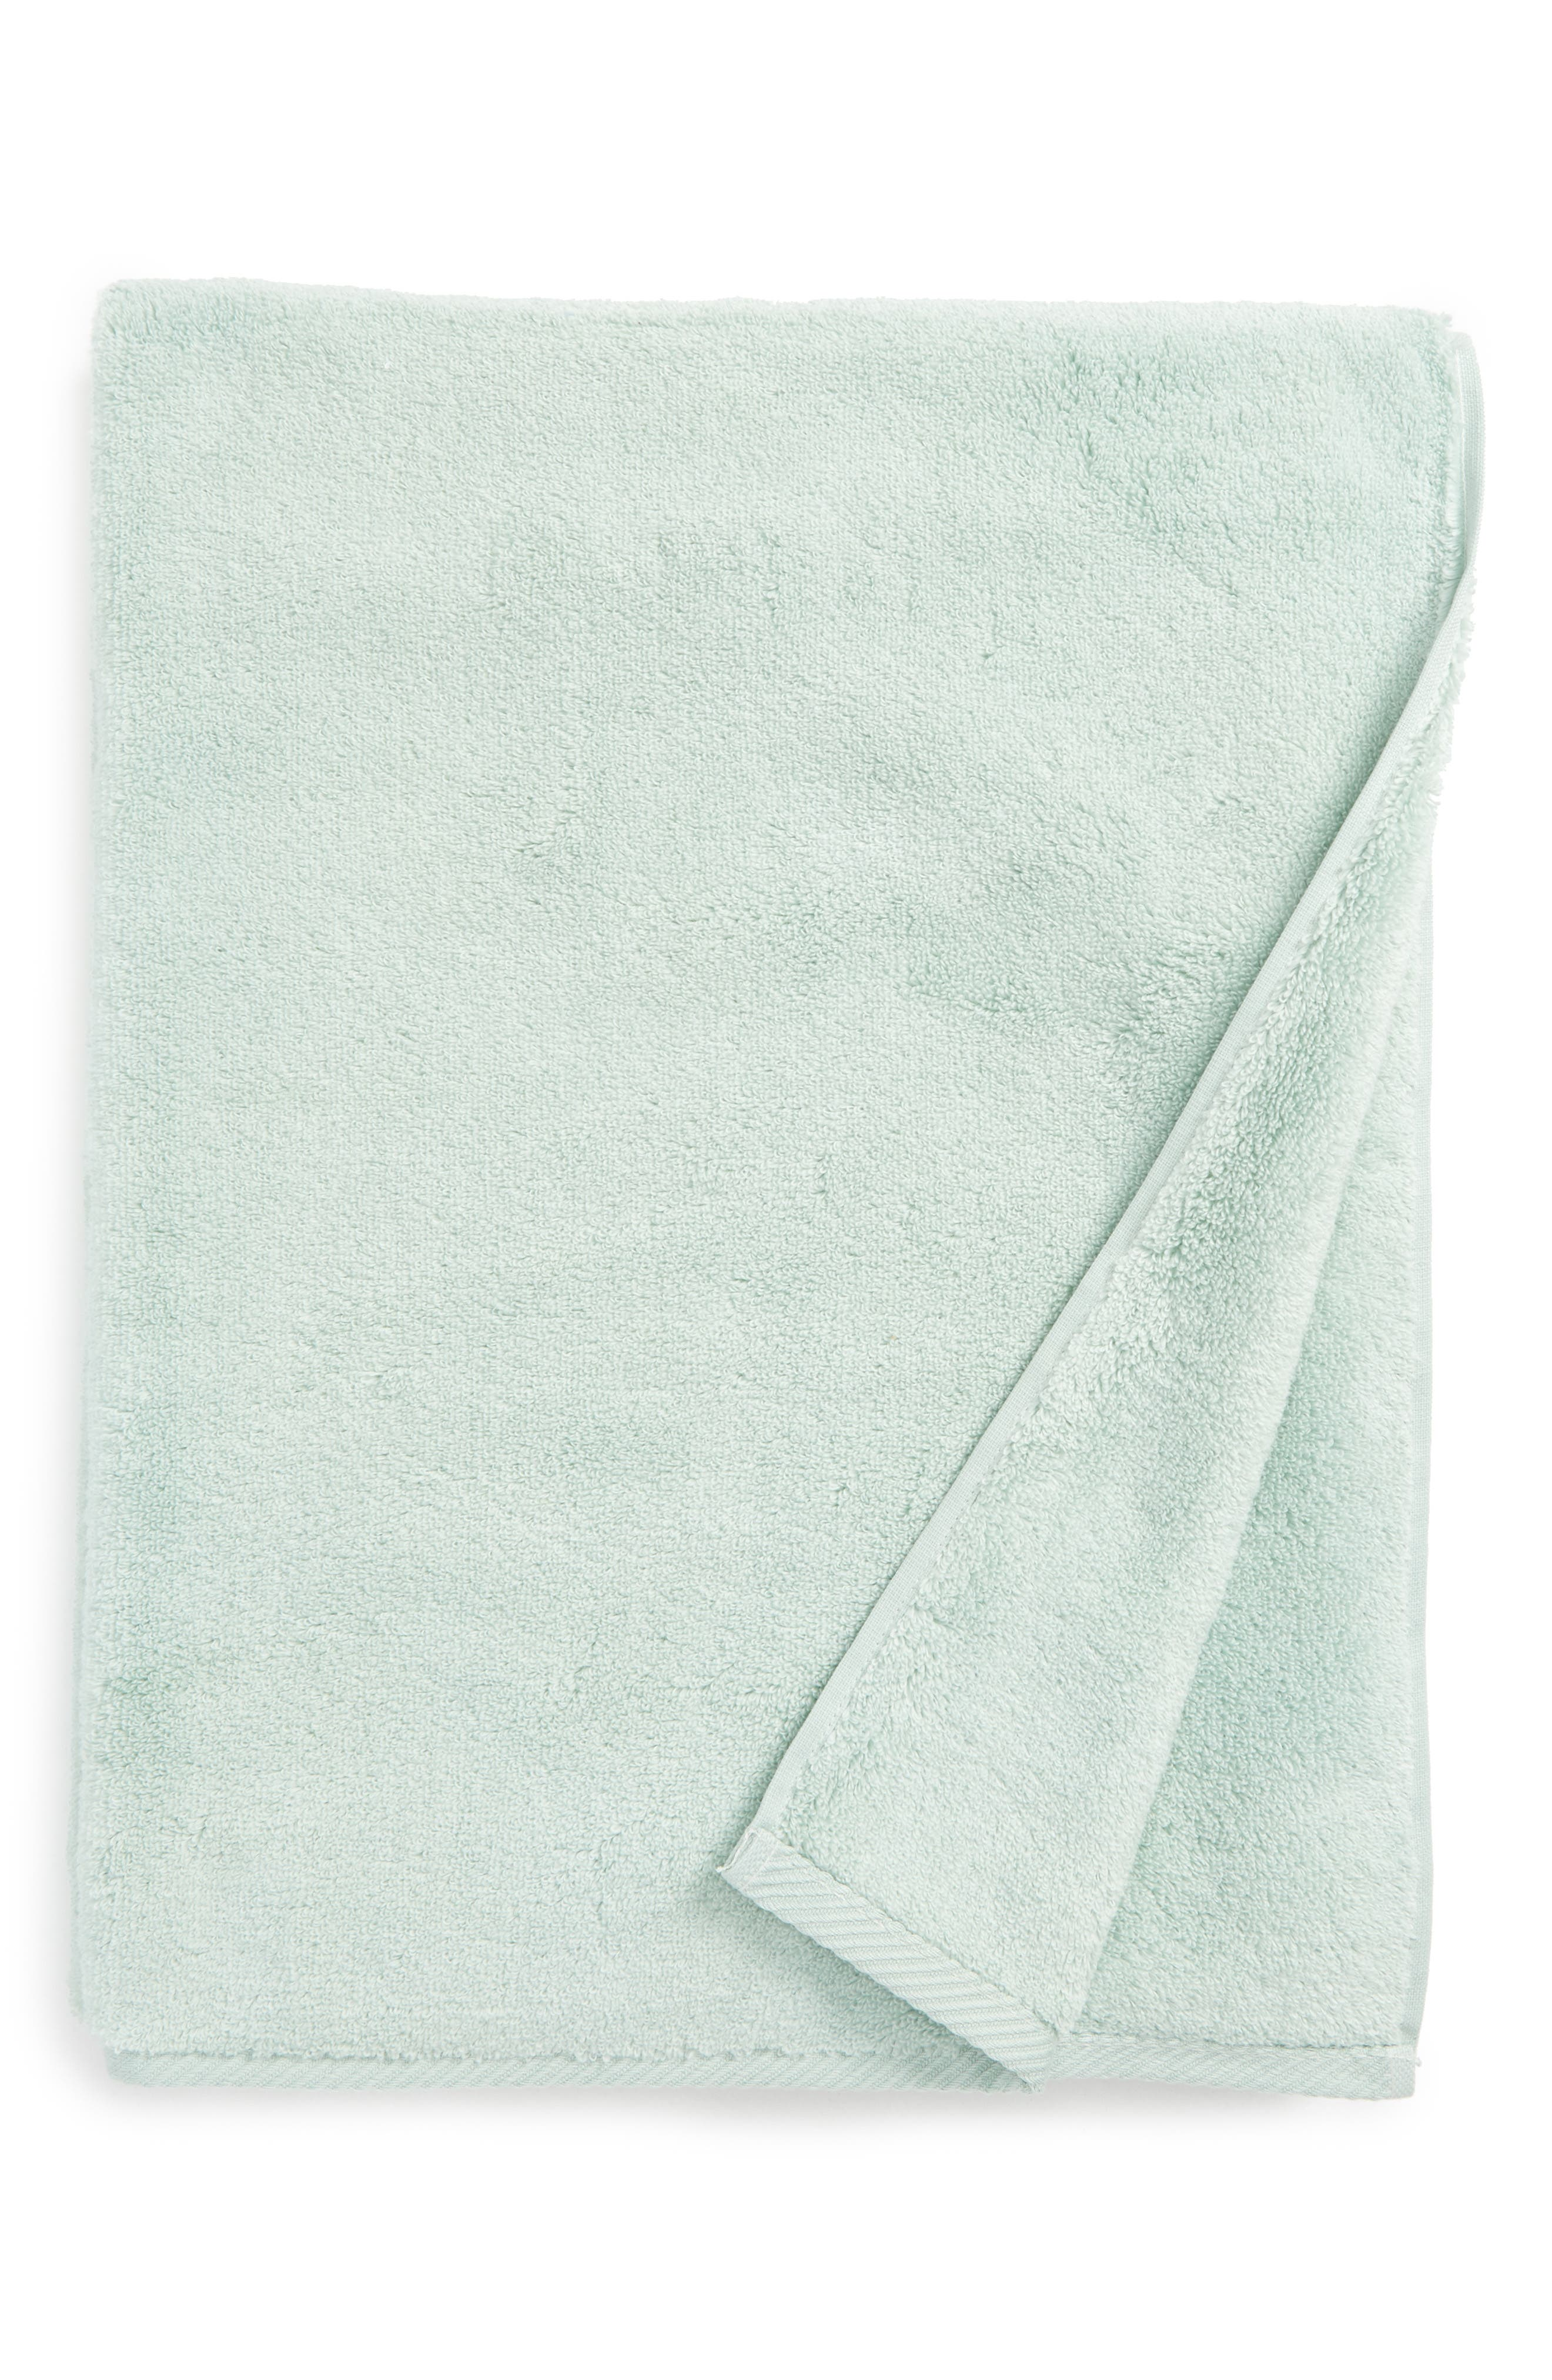 The ultrasoft Milagro towels and washcloths are made in Portugal from luxurious, long-staple zero-twist cotton, resulting in a miraculously lightweight towel that feels thick and plush. Style Name: Matouk Milagro Bath Towel. Style Number: 5431113. Available in stores.